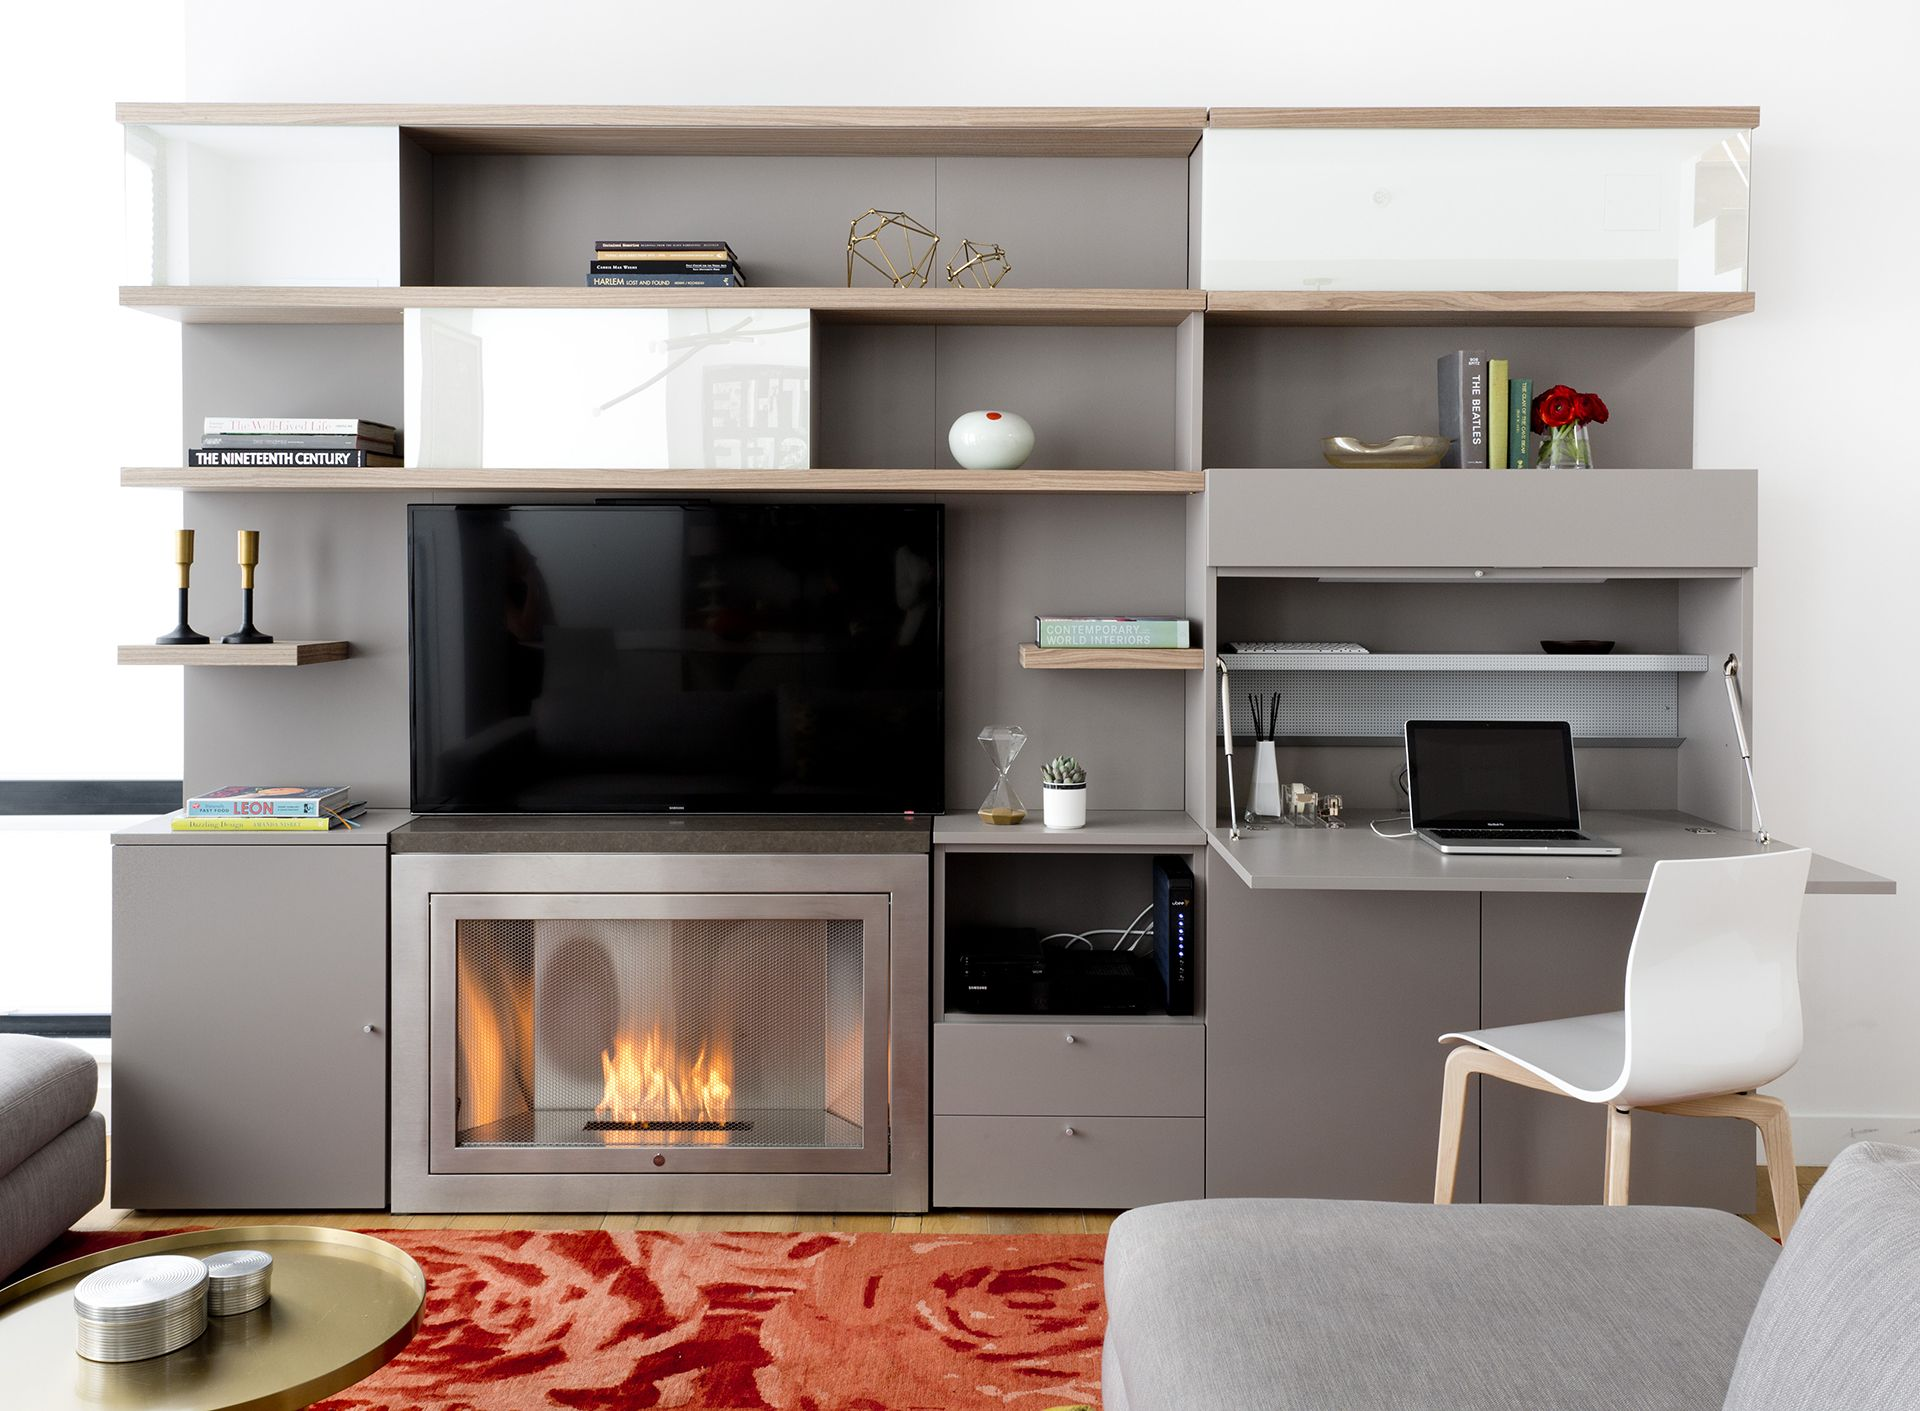 Resource Furniture and Hearth Cabinet teamed up to create this beautiful and functional modular storage system.